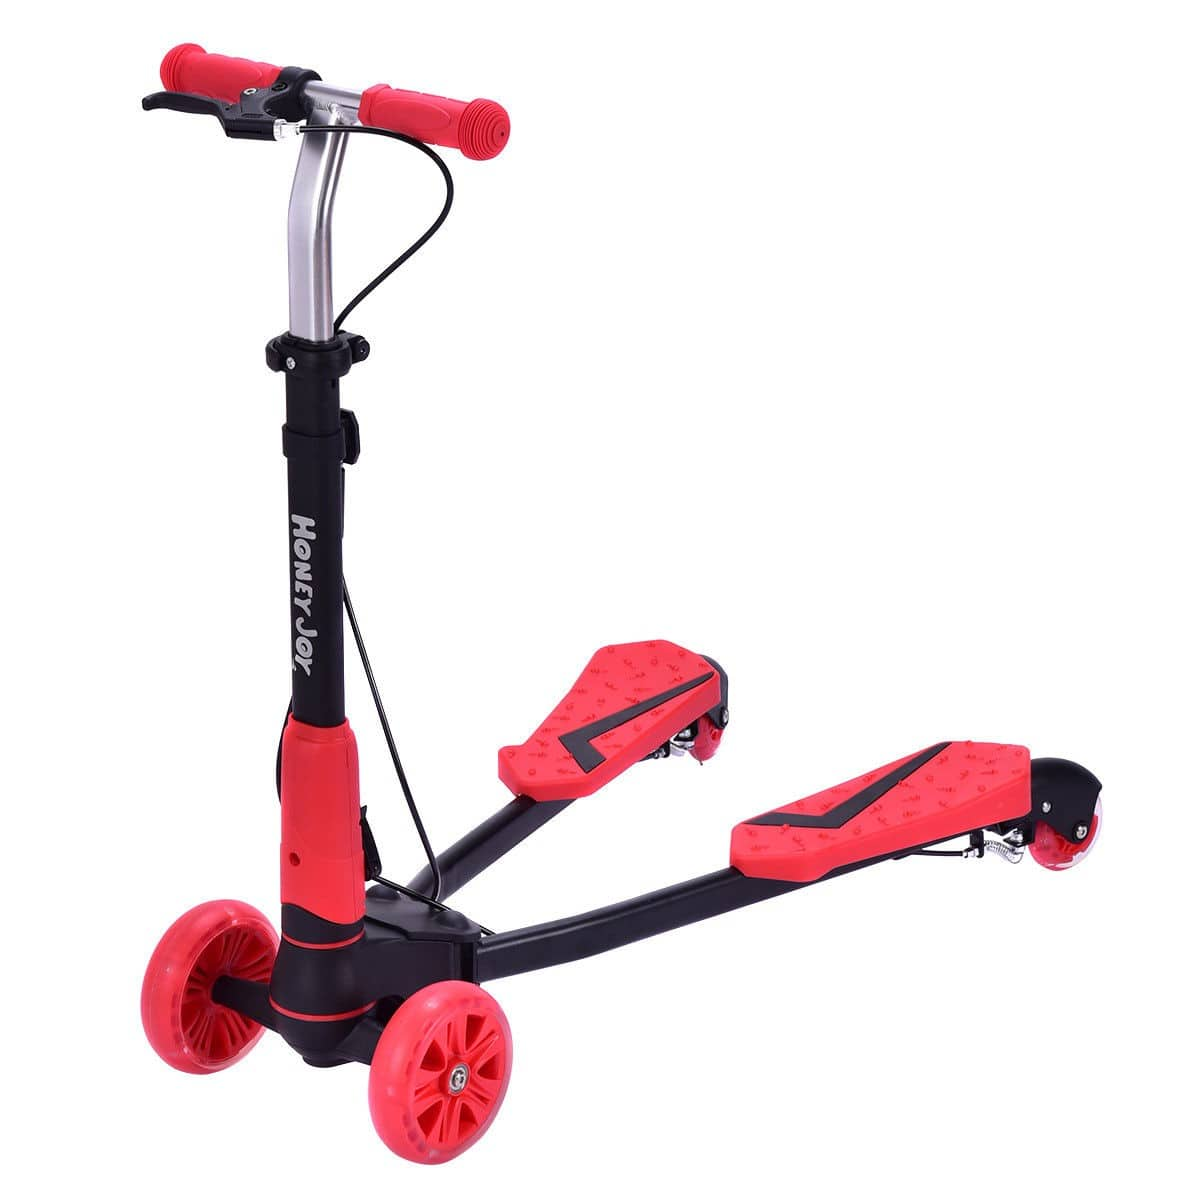 Costway Height Adjustable Foldable Kids Scooter with 4 Light up Wheels - $30.95 + Free Shipping